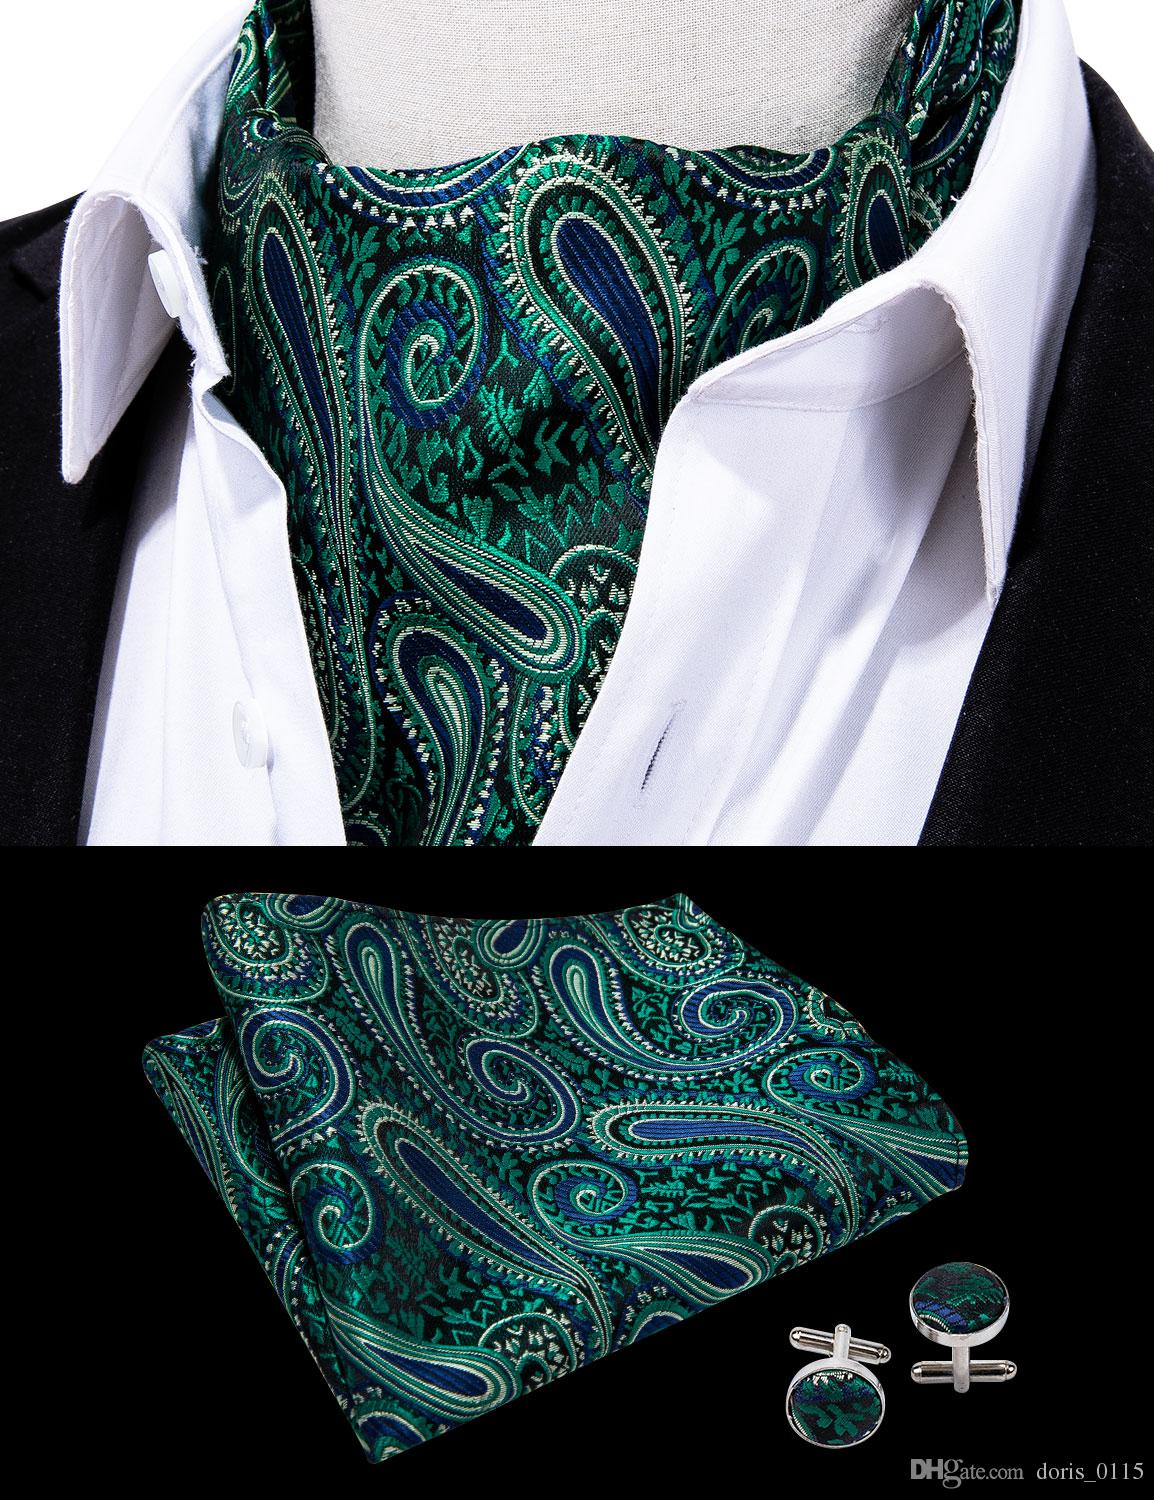 a6e0dd874fabe 2019 Hi Tie Green Floral 100%Silk Ascot Pocket Square Cuffflinks Cravat Set  For Casual Jacquard Dress Scarves Ties Party AS 006 From Doris_0115, ...